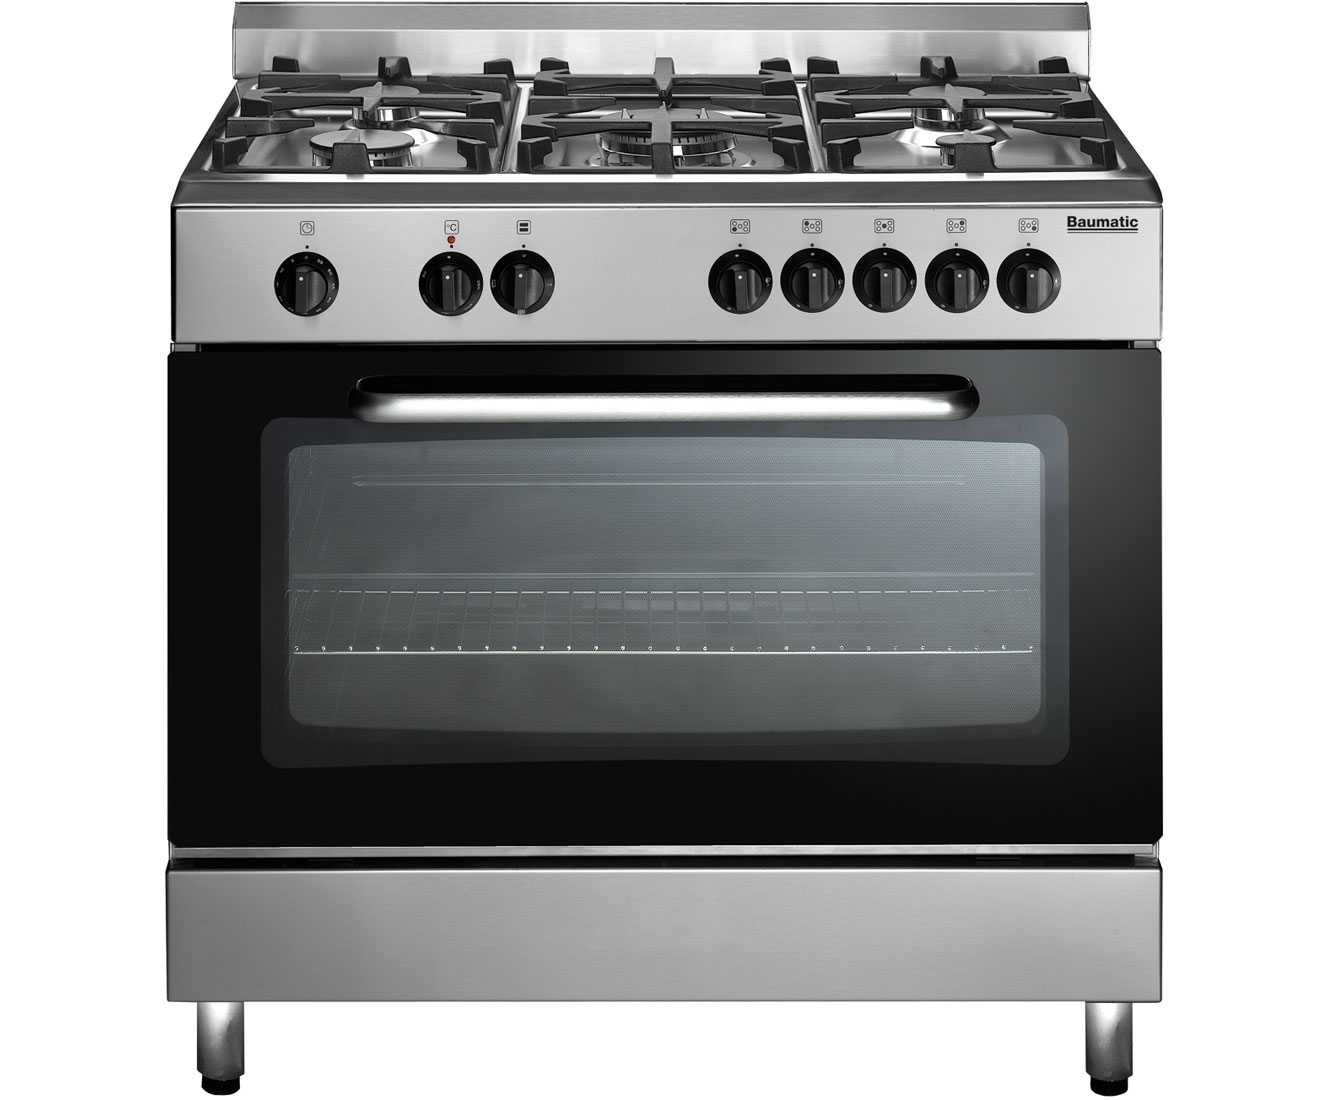 Baumatic BC391.3TCSS Free Standing Range Cooker in Stainless Steel